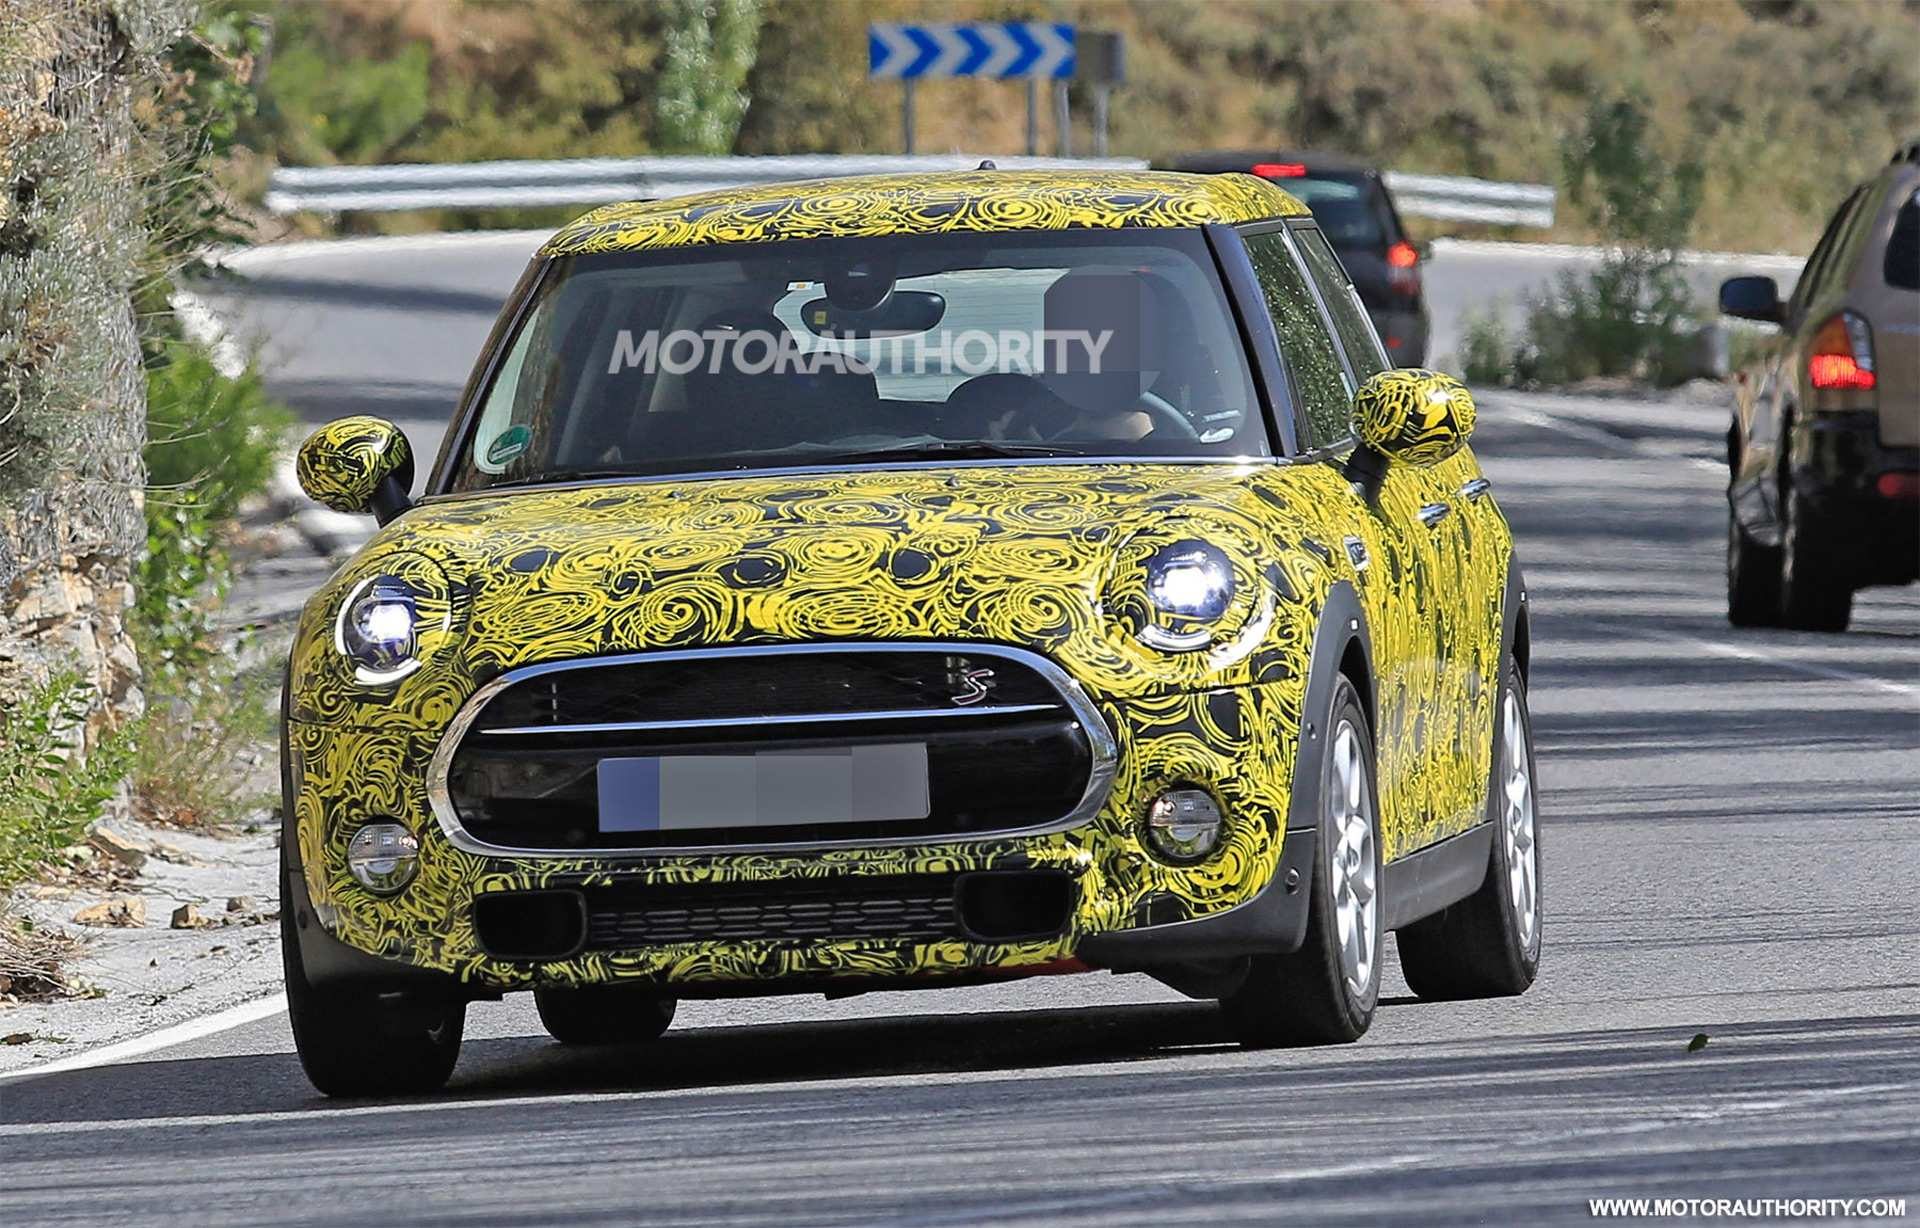 19 New 2019 Spy Shots Mini Countryman Price And Review